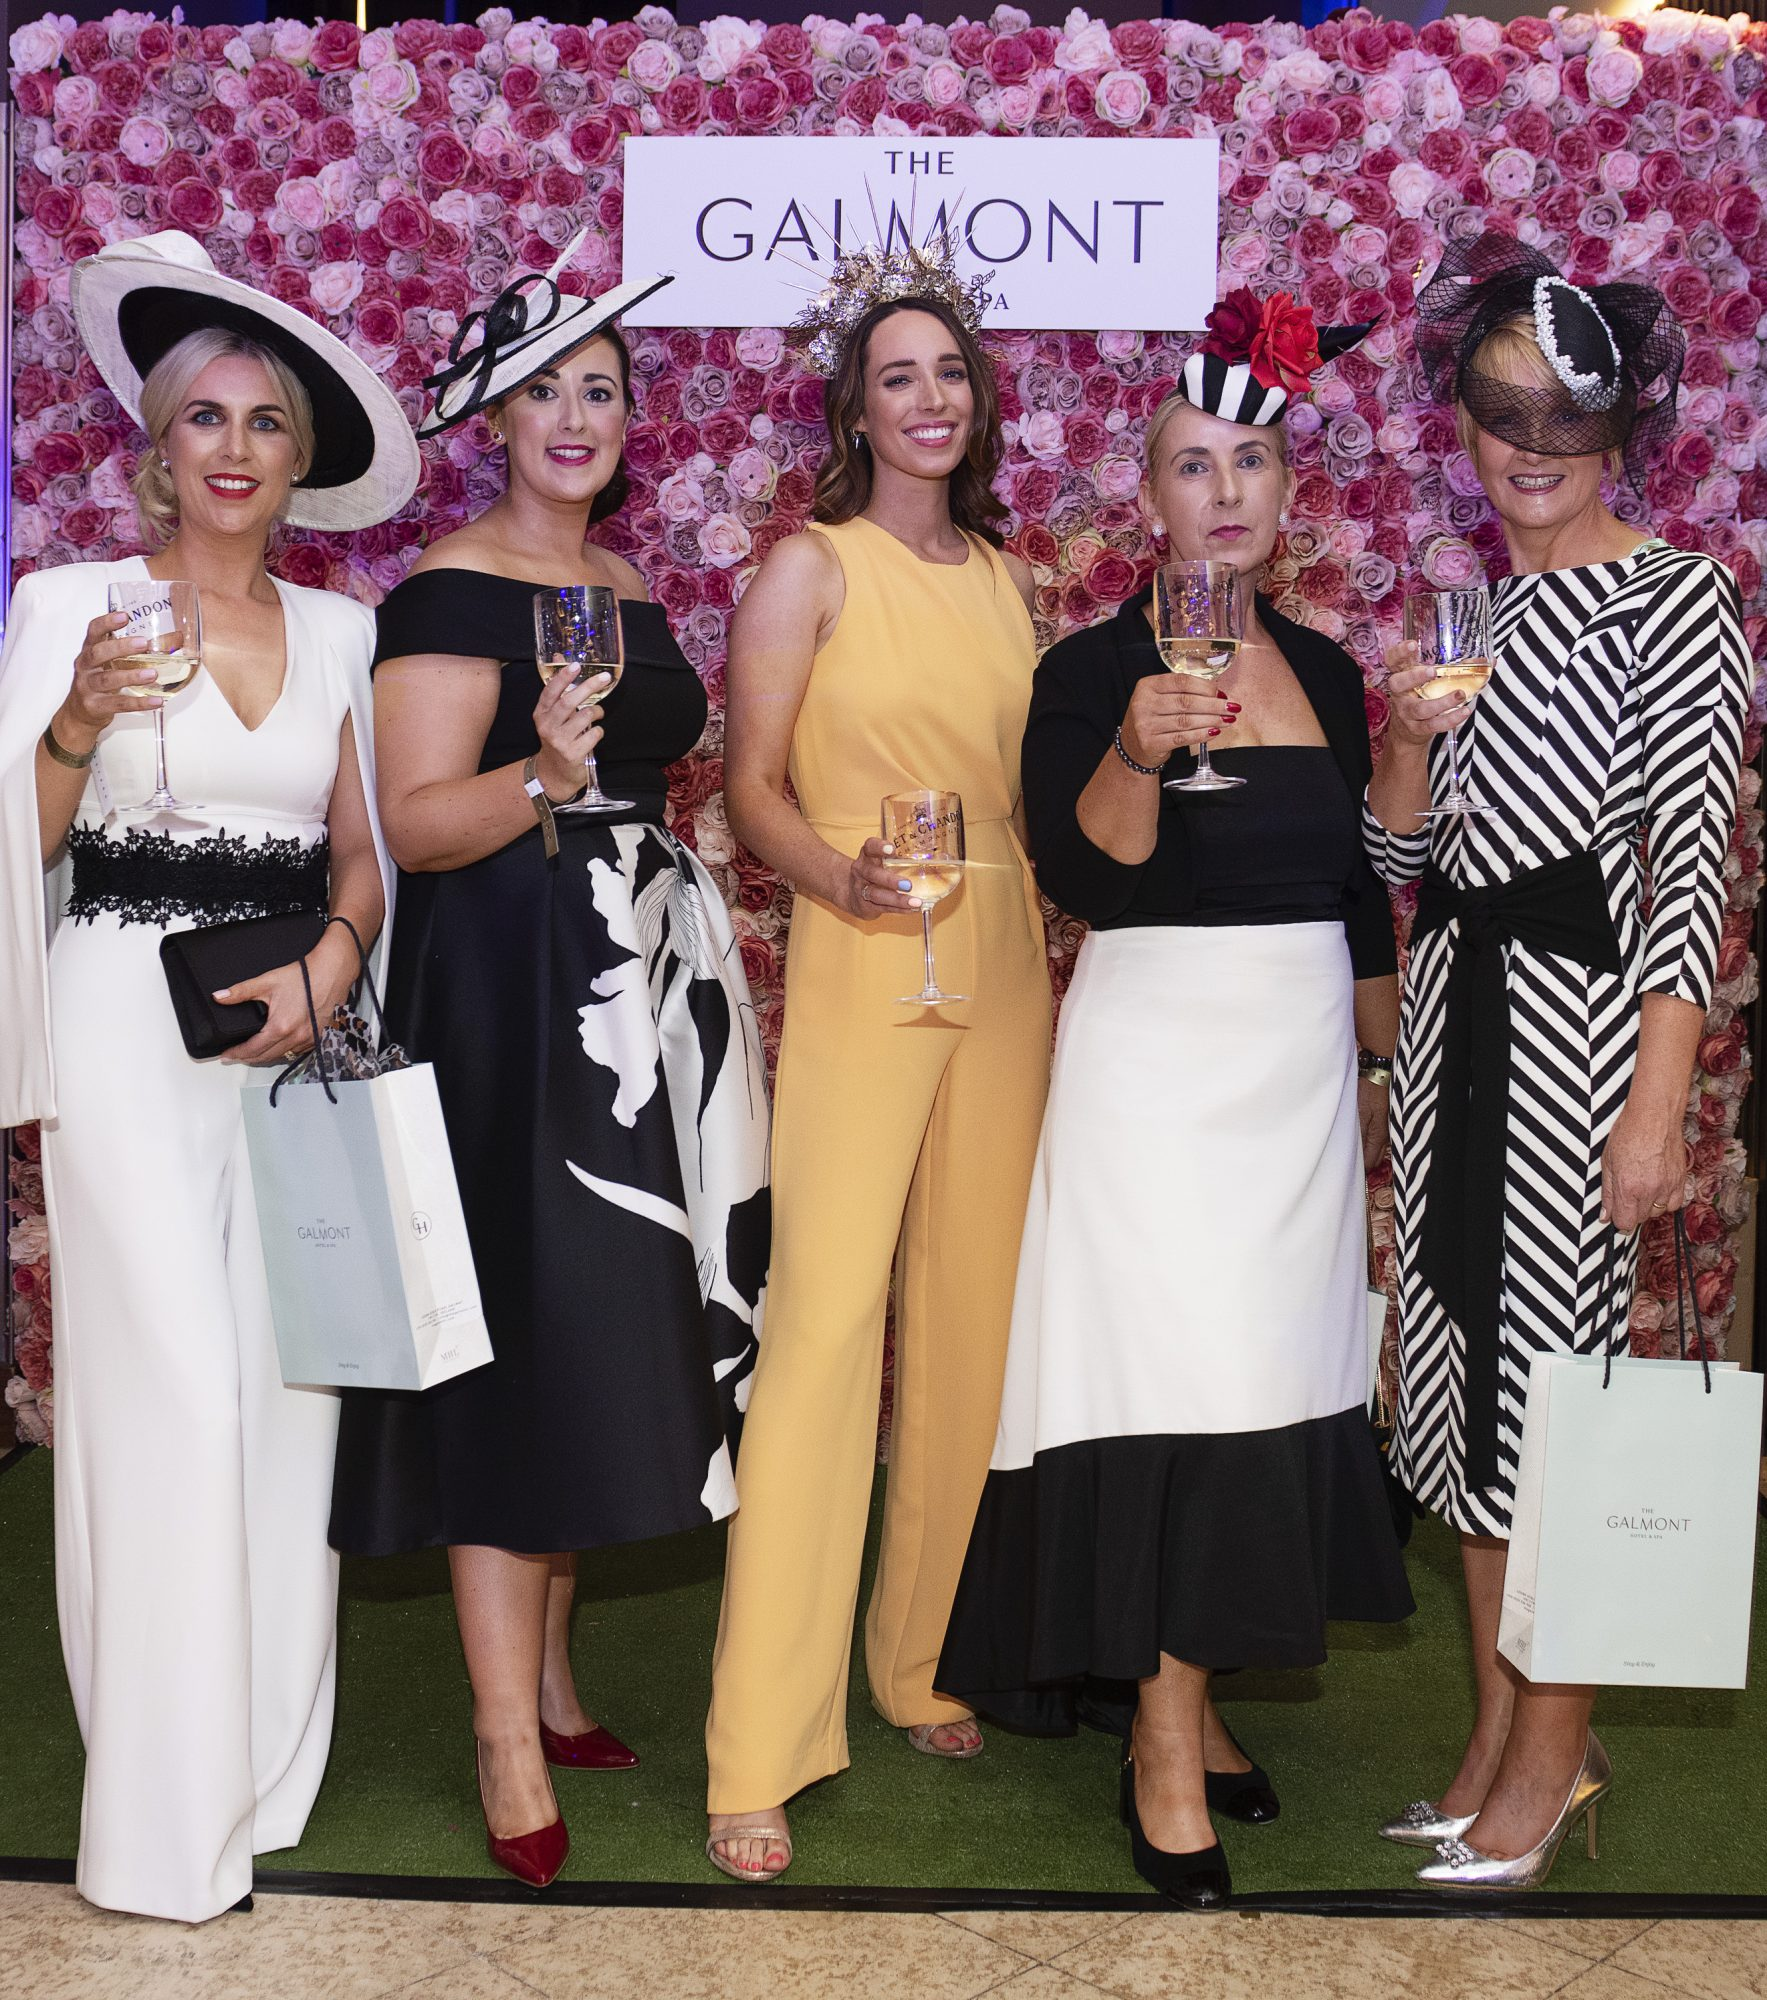 Donna Ollerenshaw (Ballgluinin), Melissa Carty (Craughwell), Stylist Ciara O'Doherty, Mary Carty (Craughwell) and Gemma McDonagh (Headford)  at the #GalmontGirlsSquad in the Galmont Hotel and Spa in Galway City. Photo: Andrew Downes, xposure